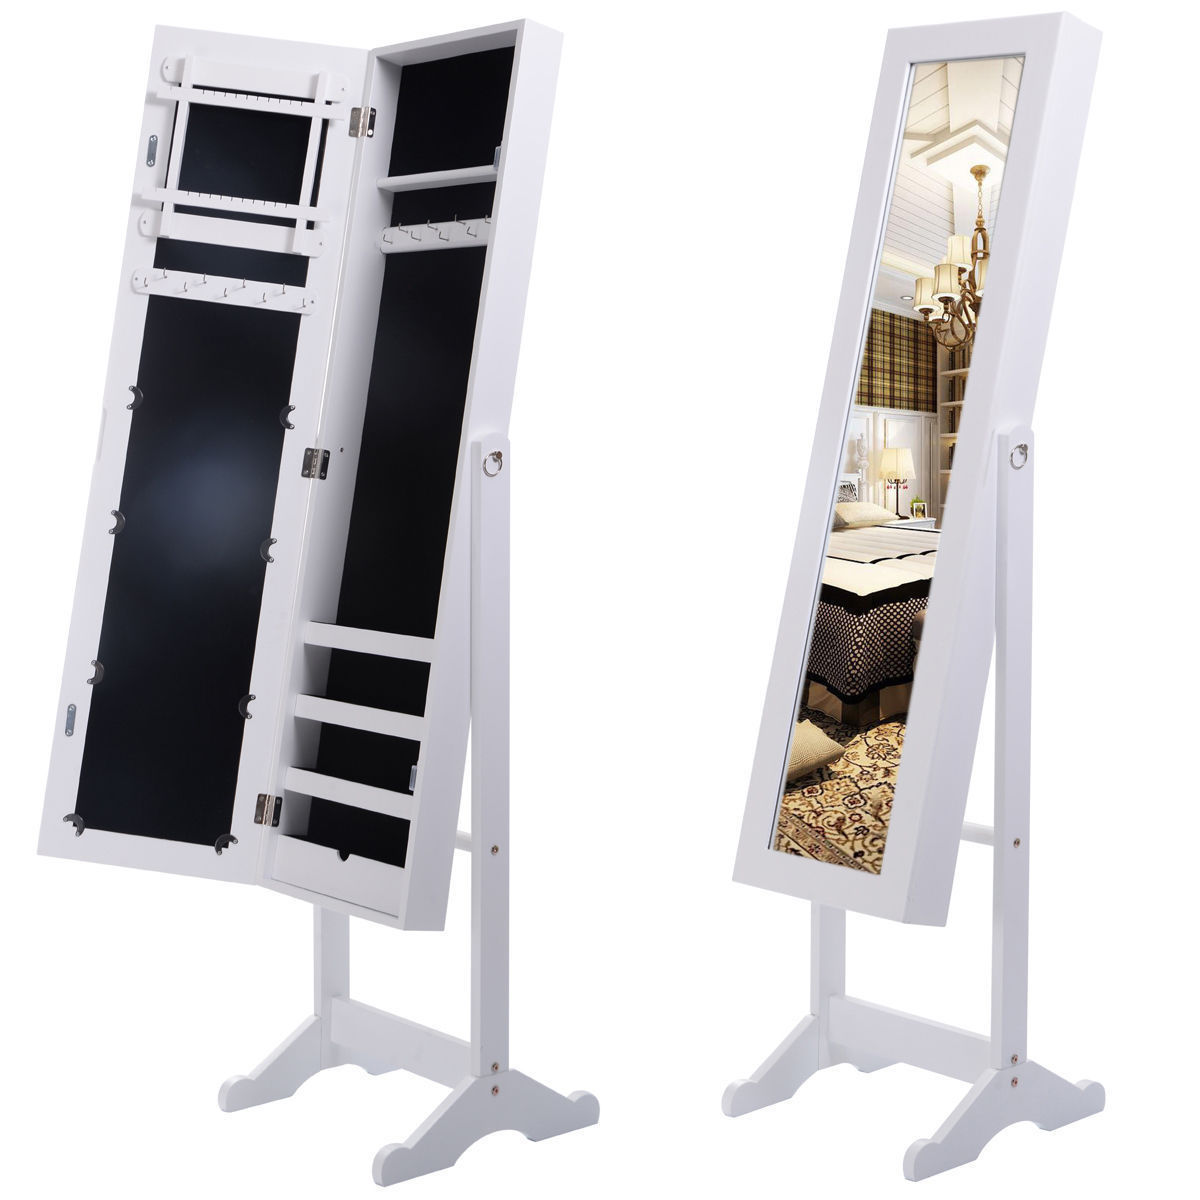 mirrored jewelry cabinet mirror organizer armoire storage box ring wstand white